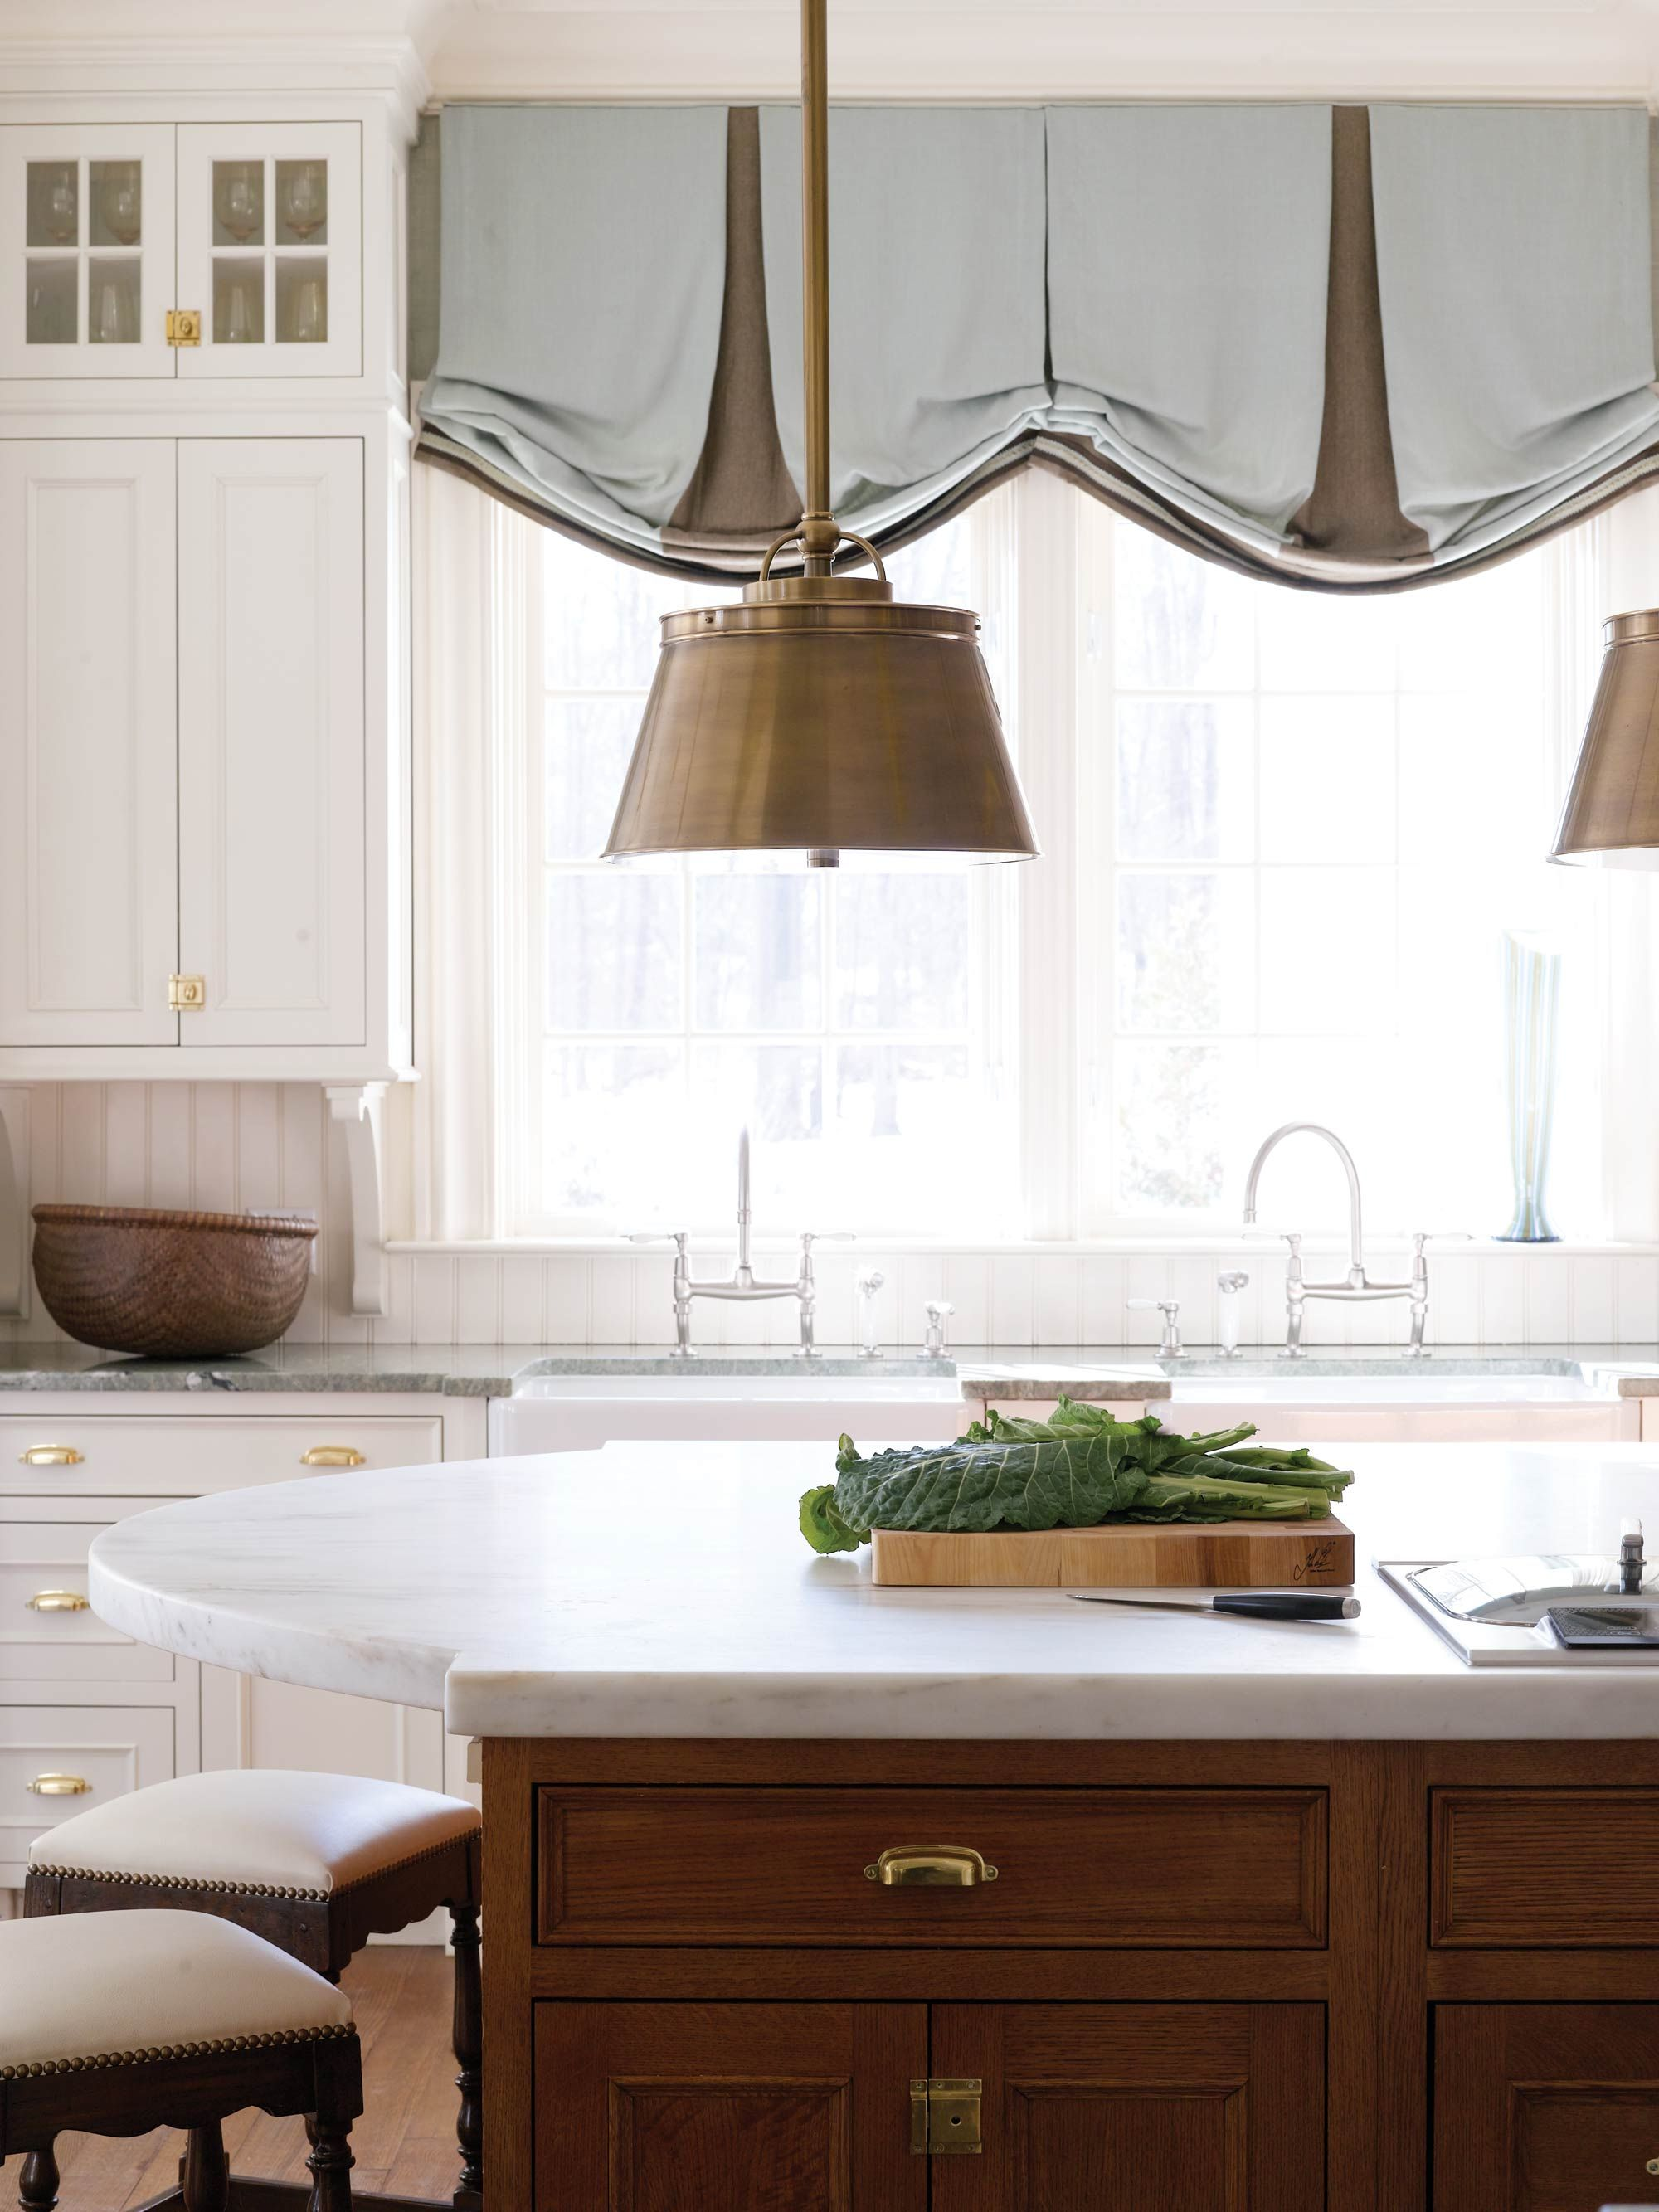 Relaxed Roman Shades With Contrasting Inset Pleat Shades Pleasing Window Treatment Ideas For Kitchen Design Ideas